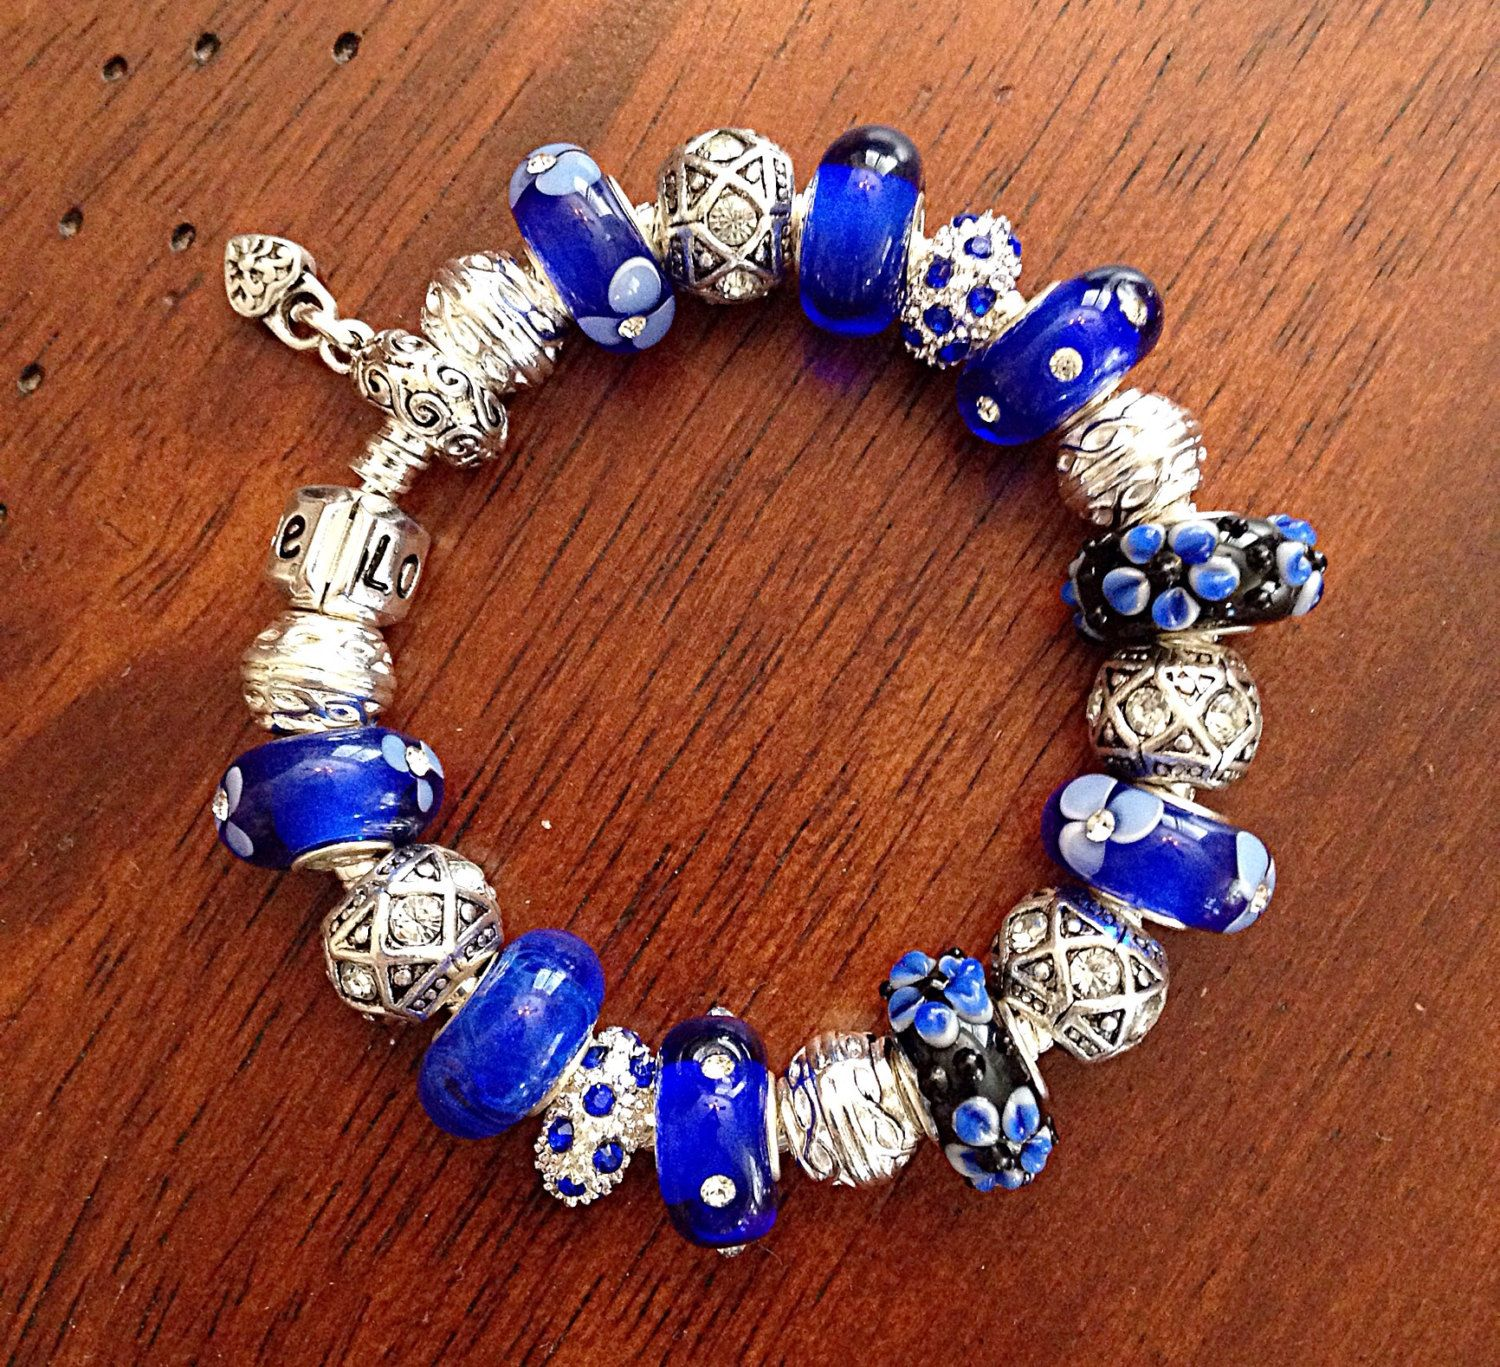 ribbon blue awareness bracelet necklace pin crystal swarovski cancer colon